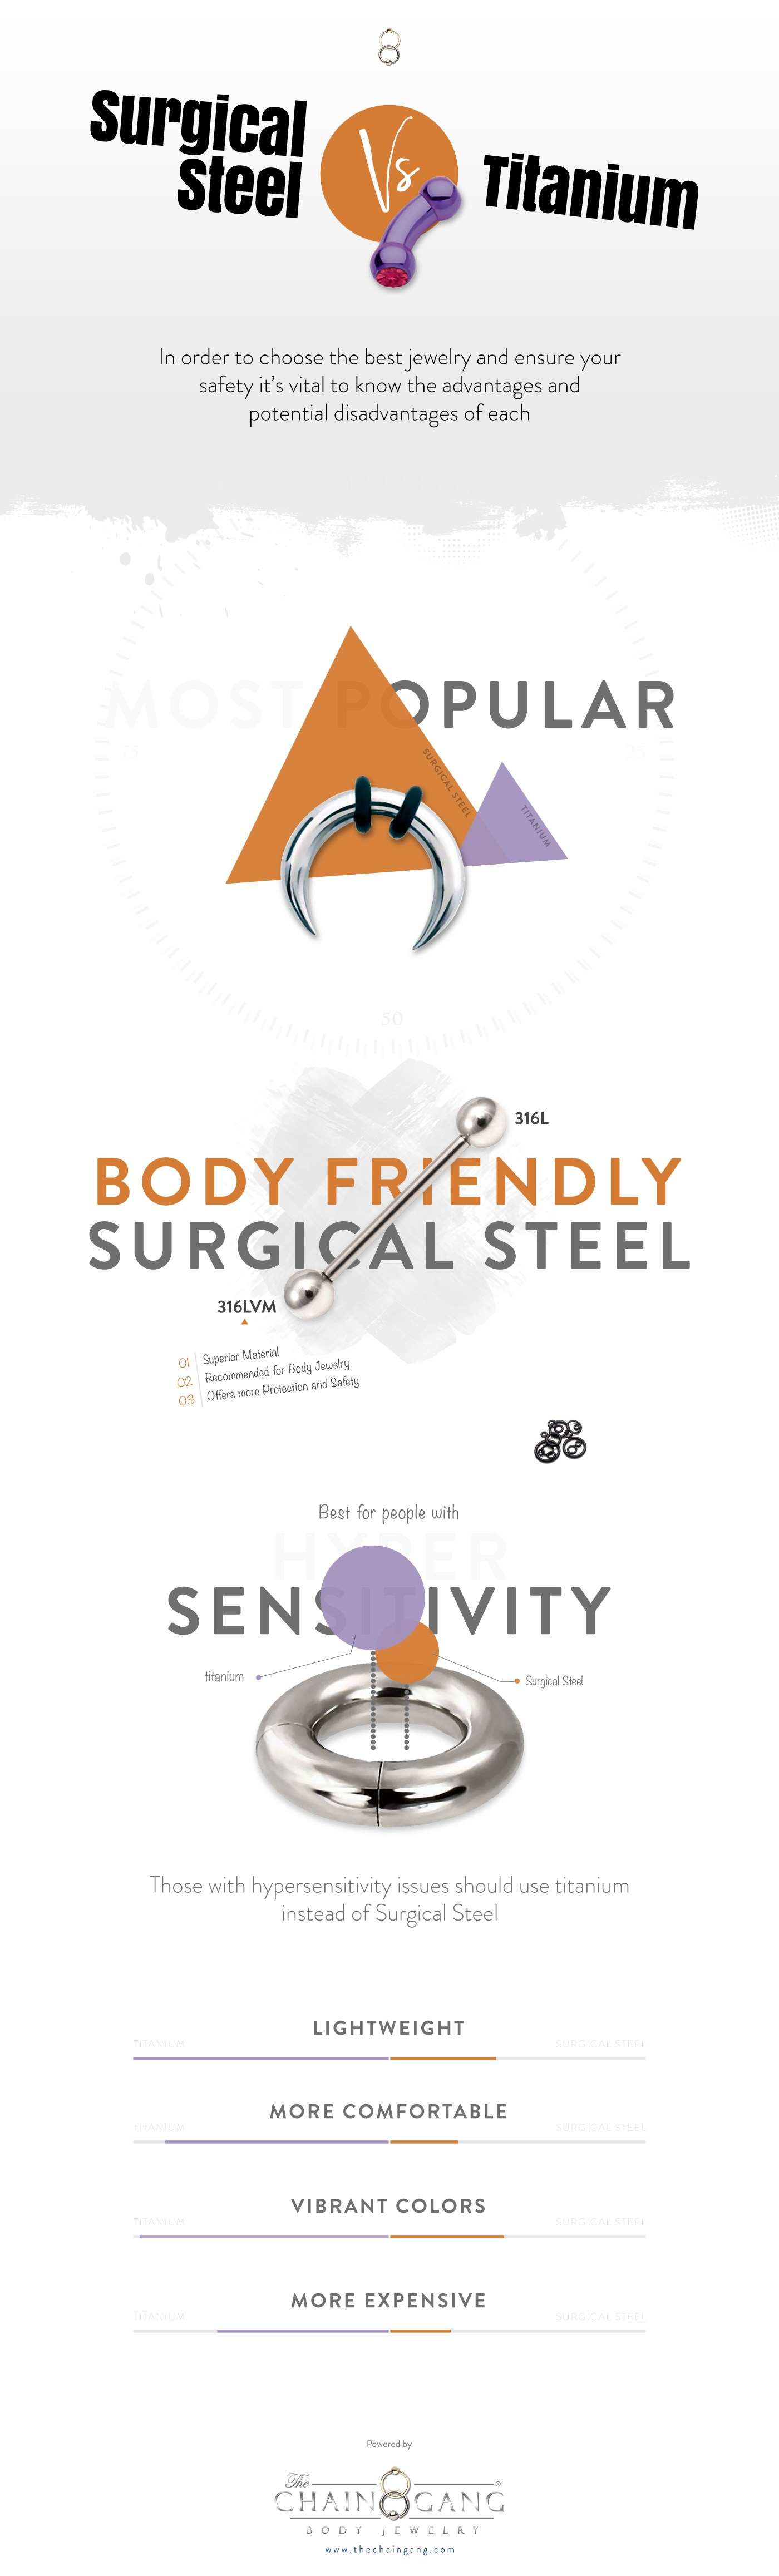 Surgical Steel vs Titanium: Which is Better?